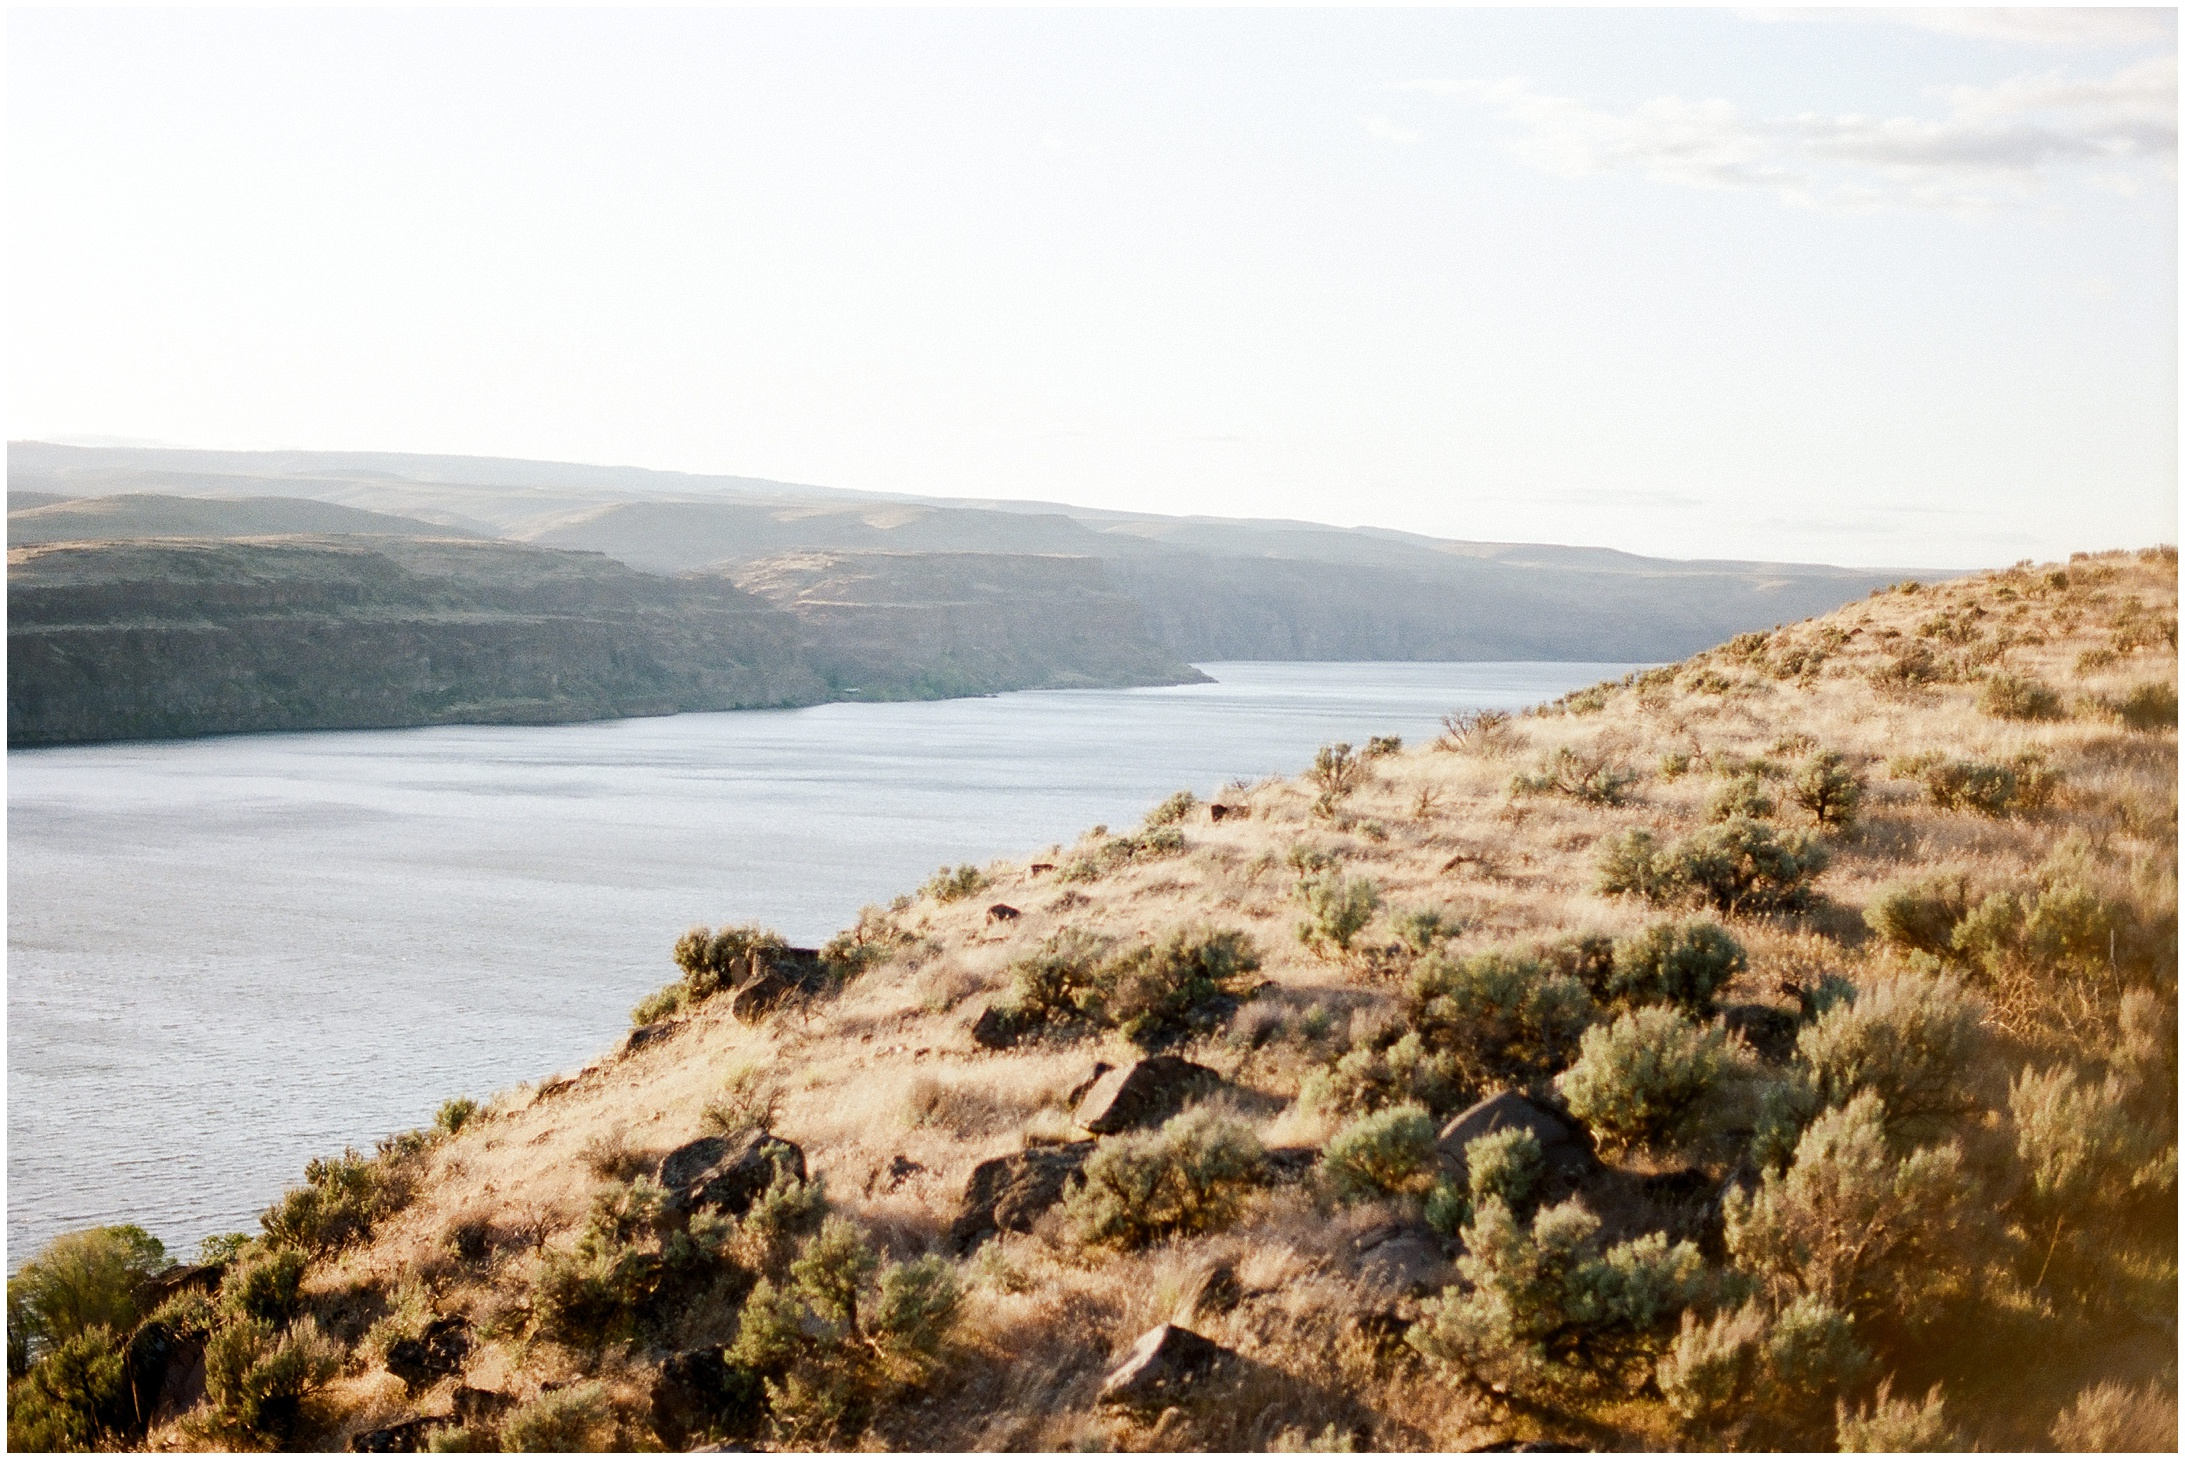 Landscape photo of the Columbia River Gorge from the Frenchman Coulee Recreation Area in Vantage, WA in Forthright Photo